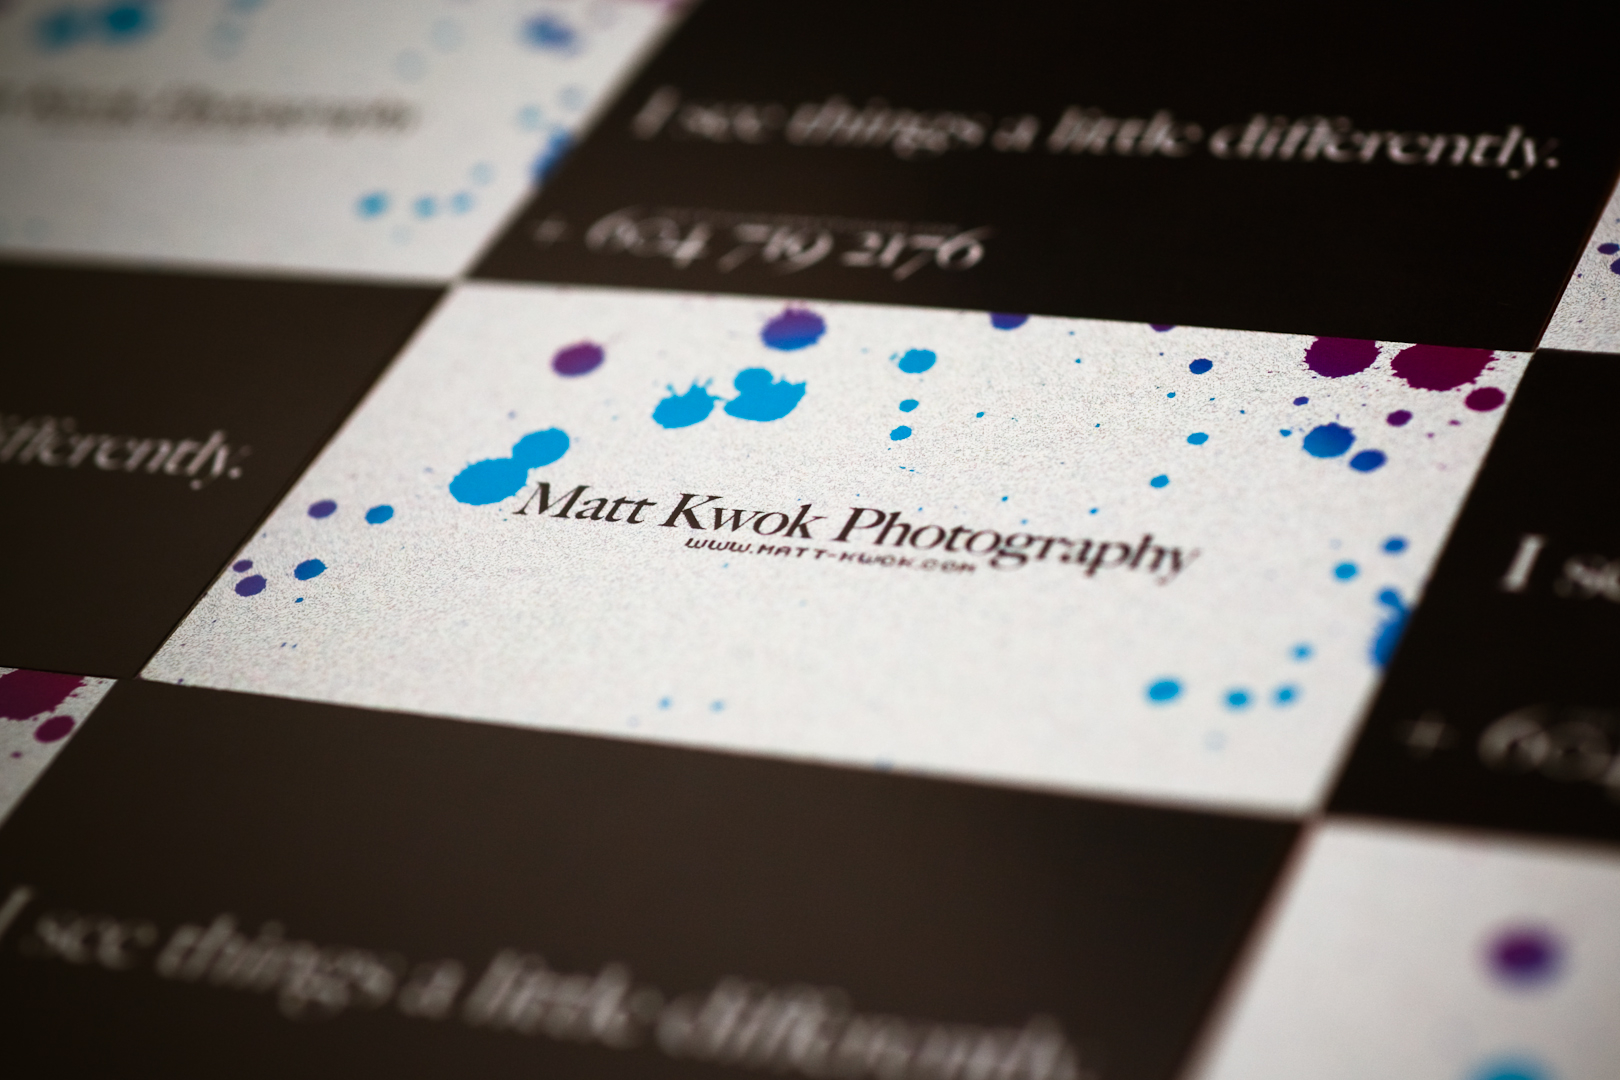 20100130-Matt-Kwok-businesscard-0001